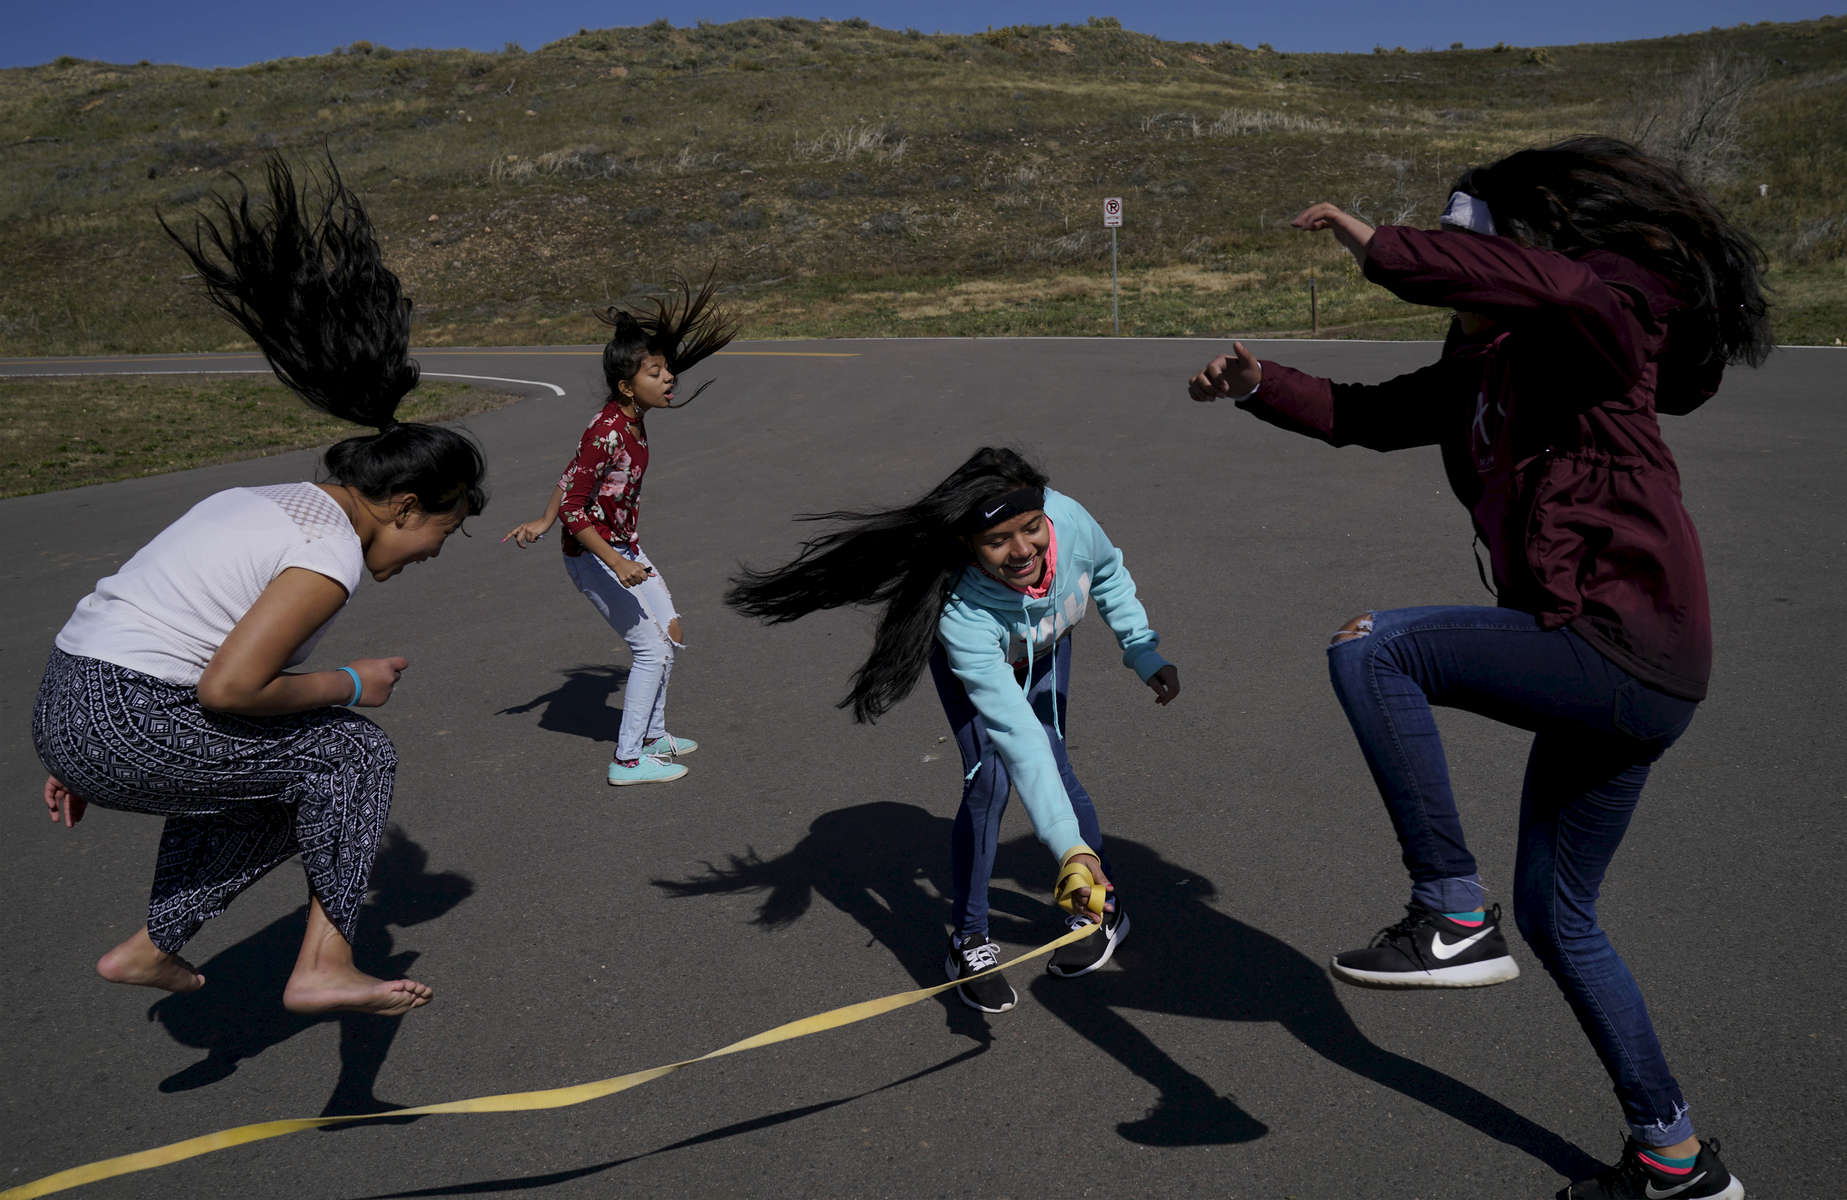 (l-r) Samita Subba, 14,  Devika Subba, 14, Laxmi Adhikari, 14, and Susmita Adhikari, 16, play together during a campout at Bear Lake Campground in Lakewood, Colo. on Oct. 15, 2017.